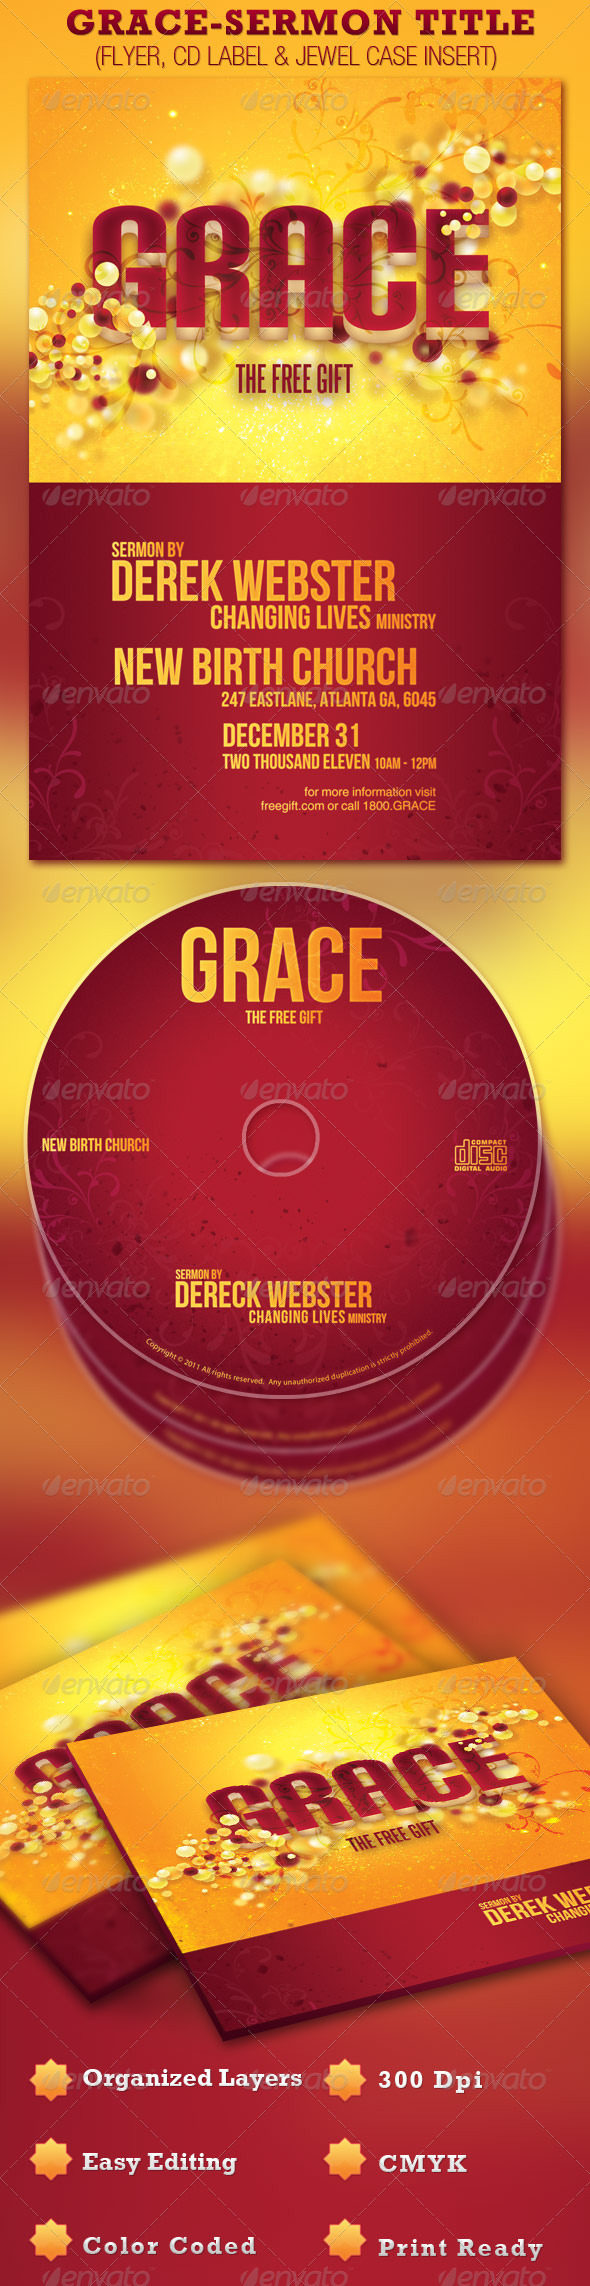 GraphicRiver Grace Sermon Title Flyer and CD 1199011